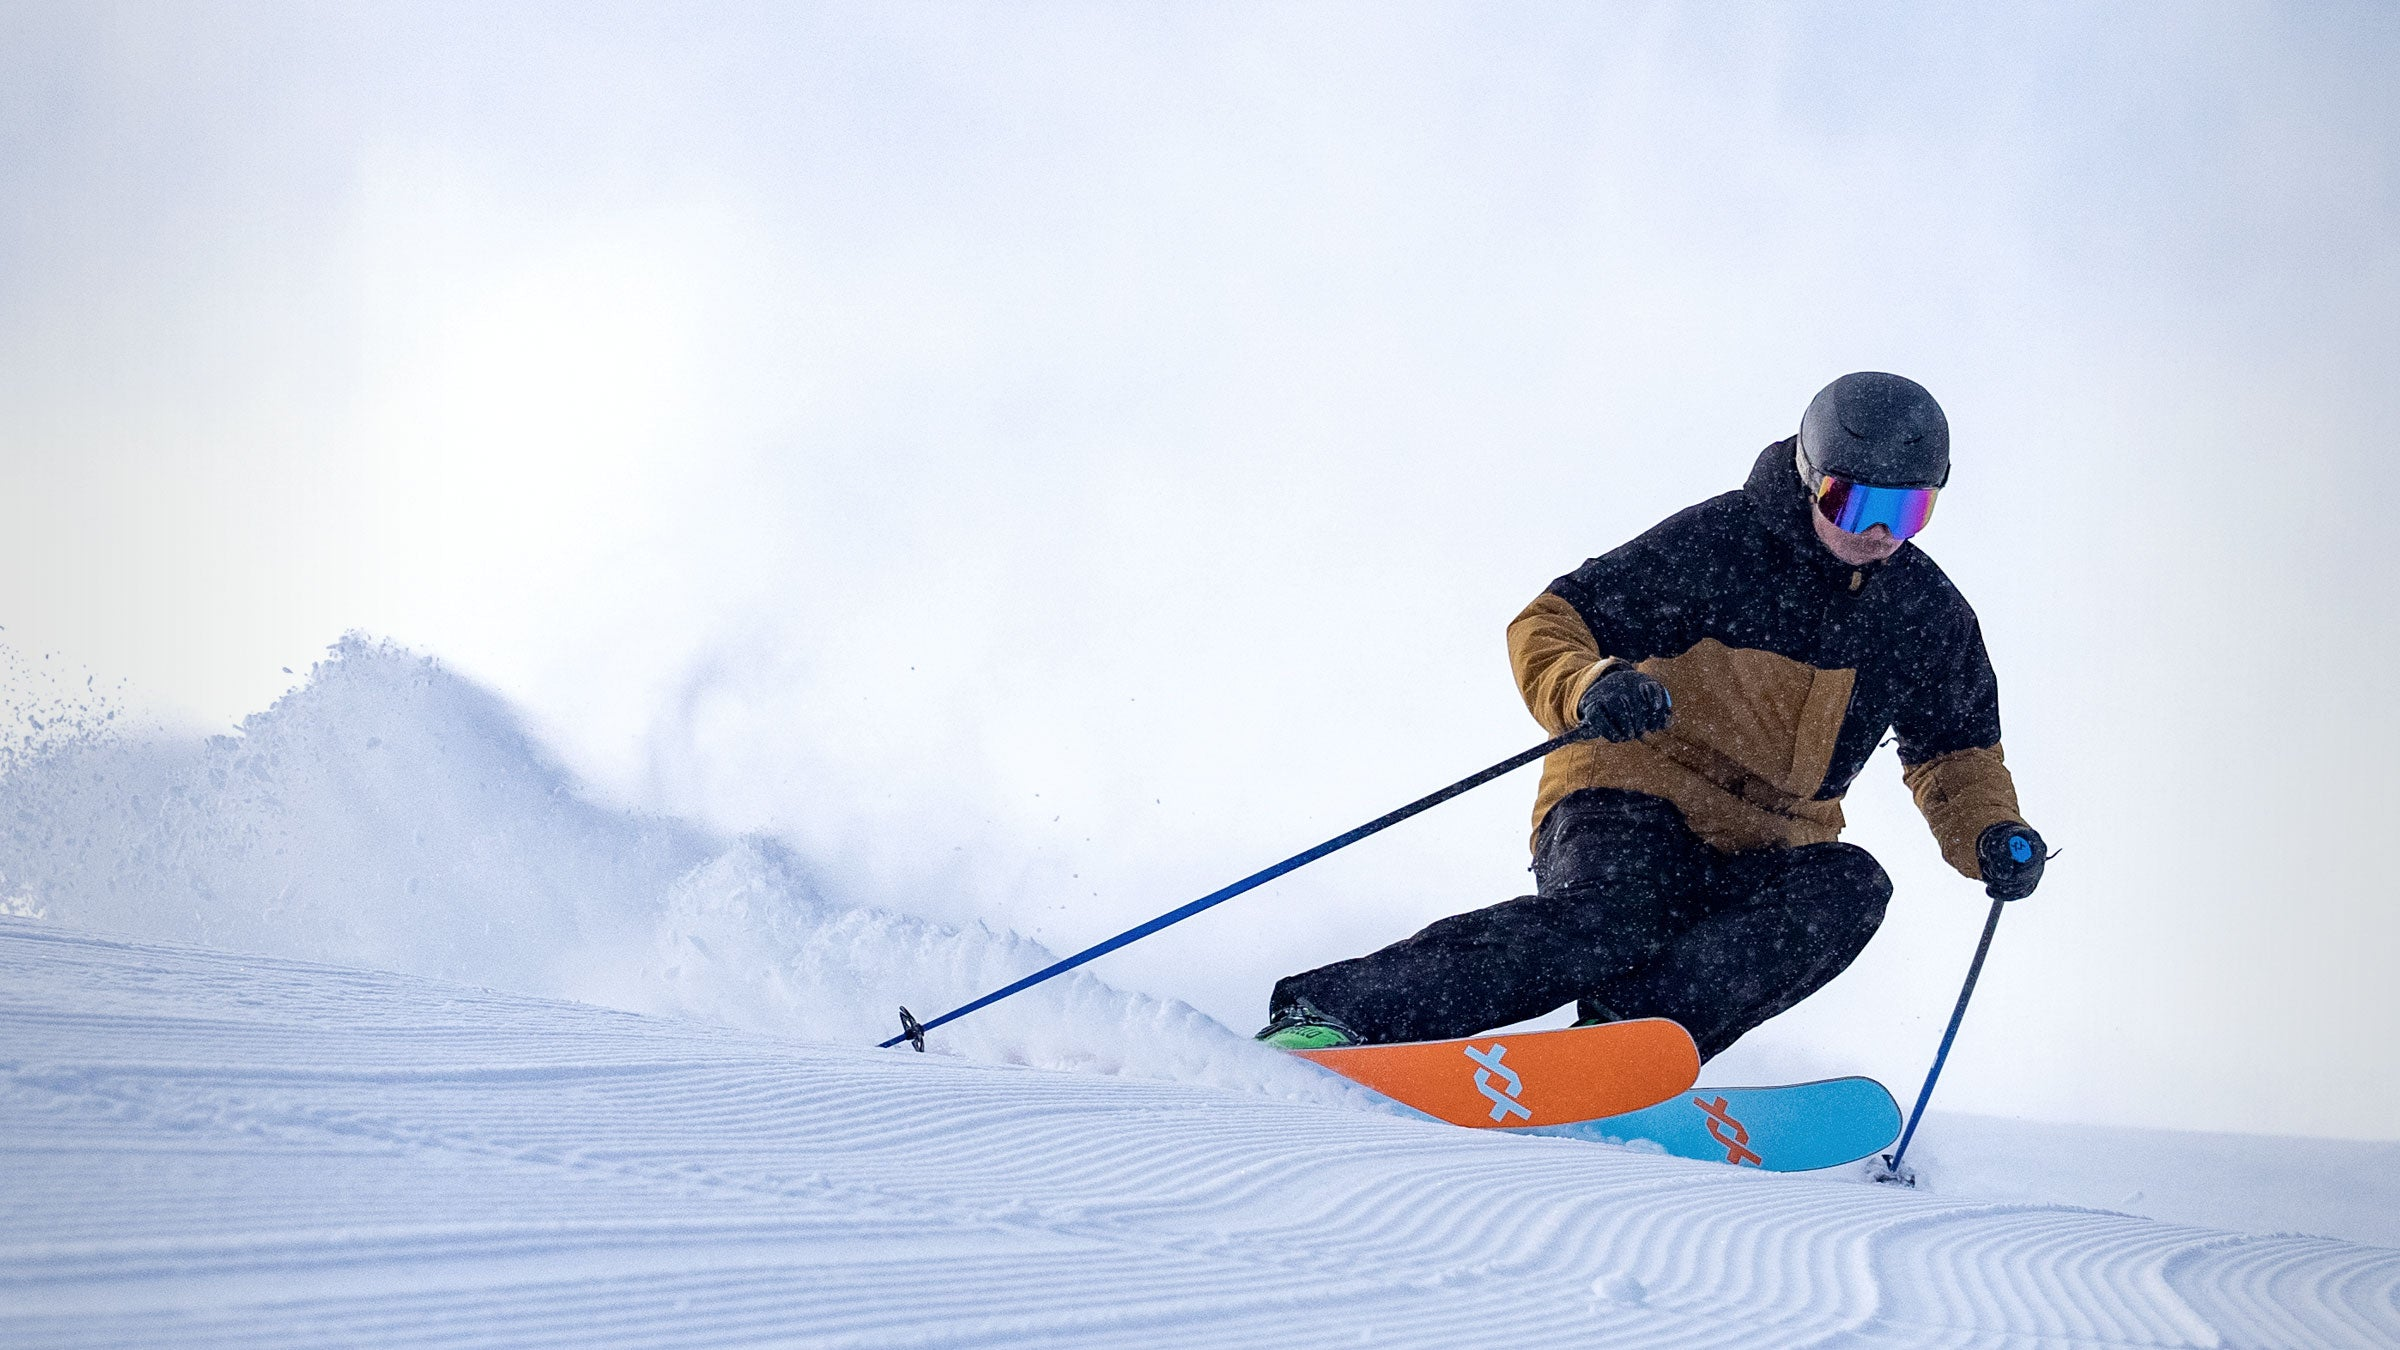 George Rodney carving a turn in the black summit ski pant